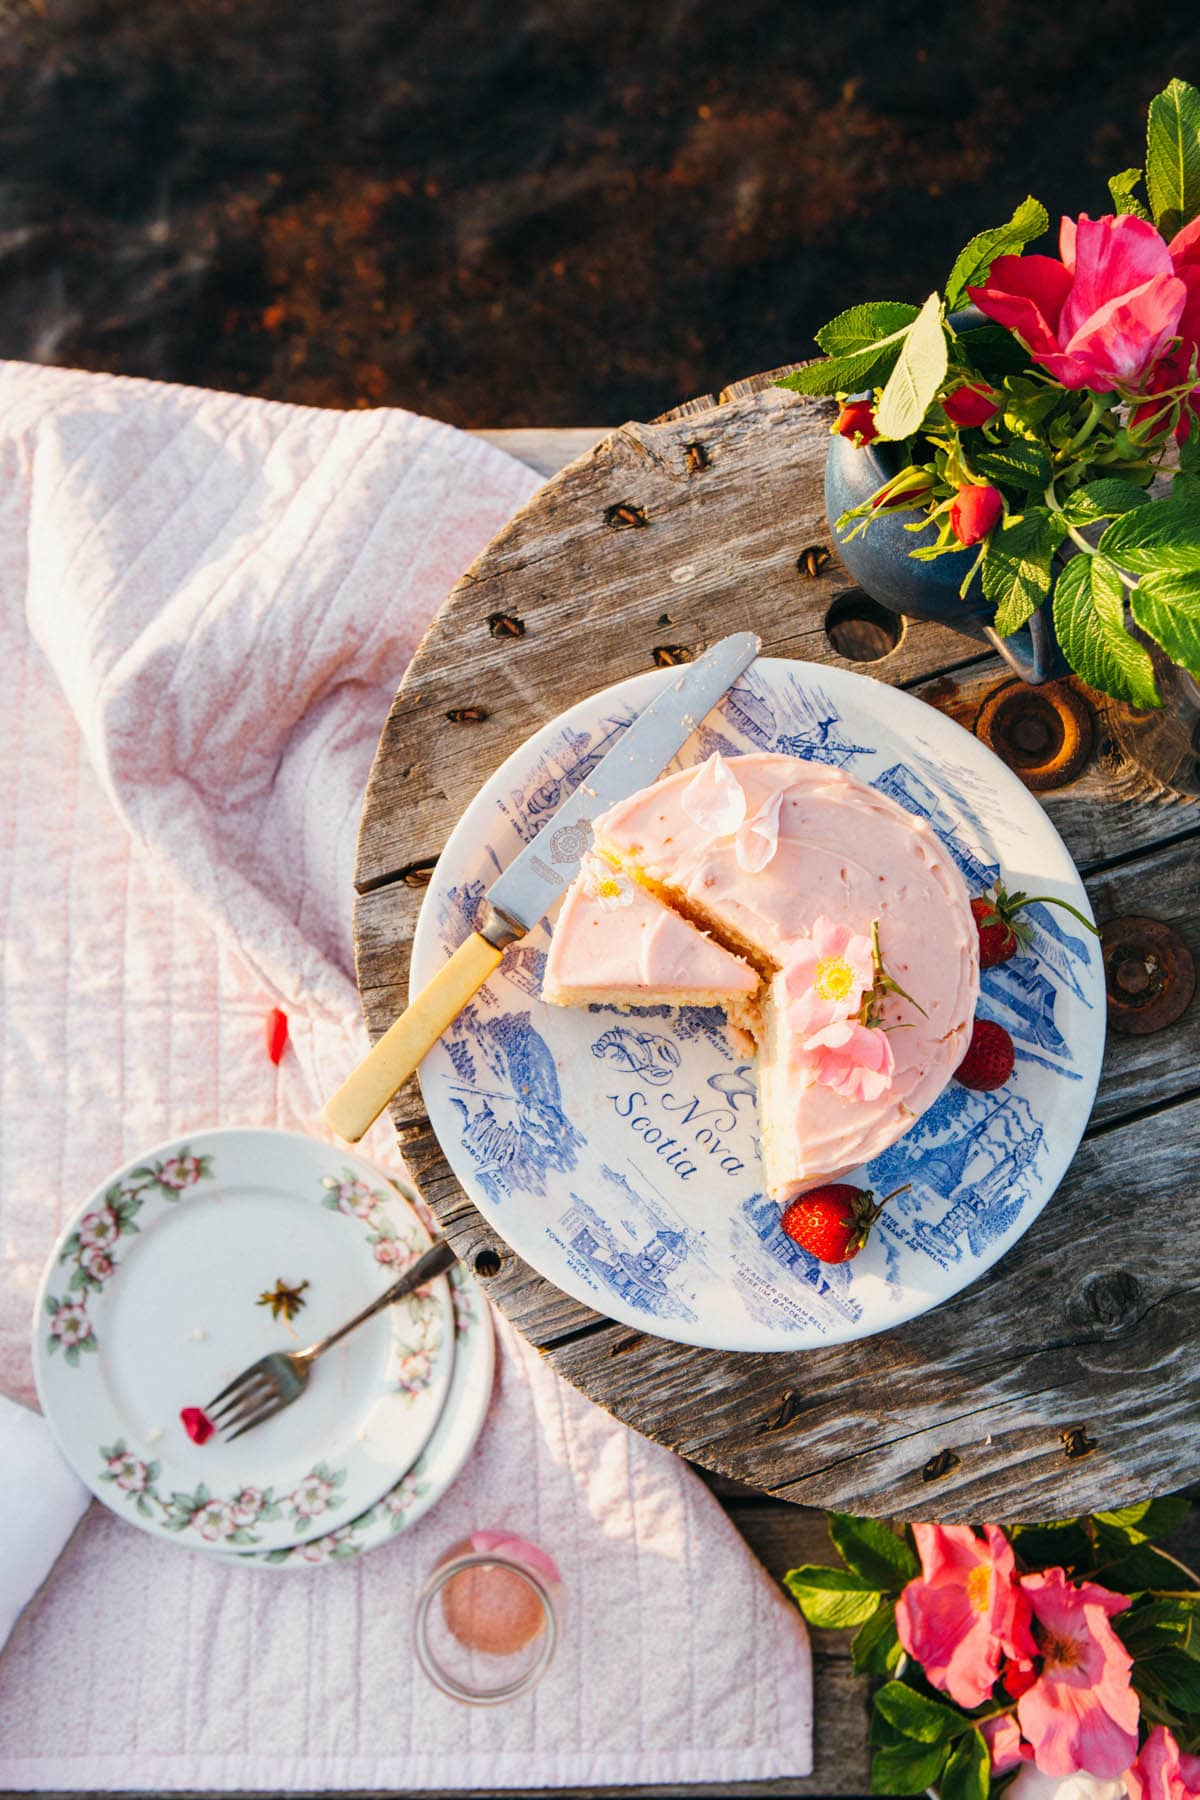 A sliced cake with pink frosting on a blue and white plate sitting on a weathered grey table on a lakeside dock.